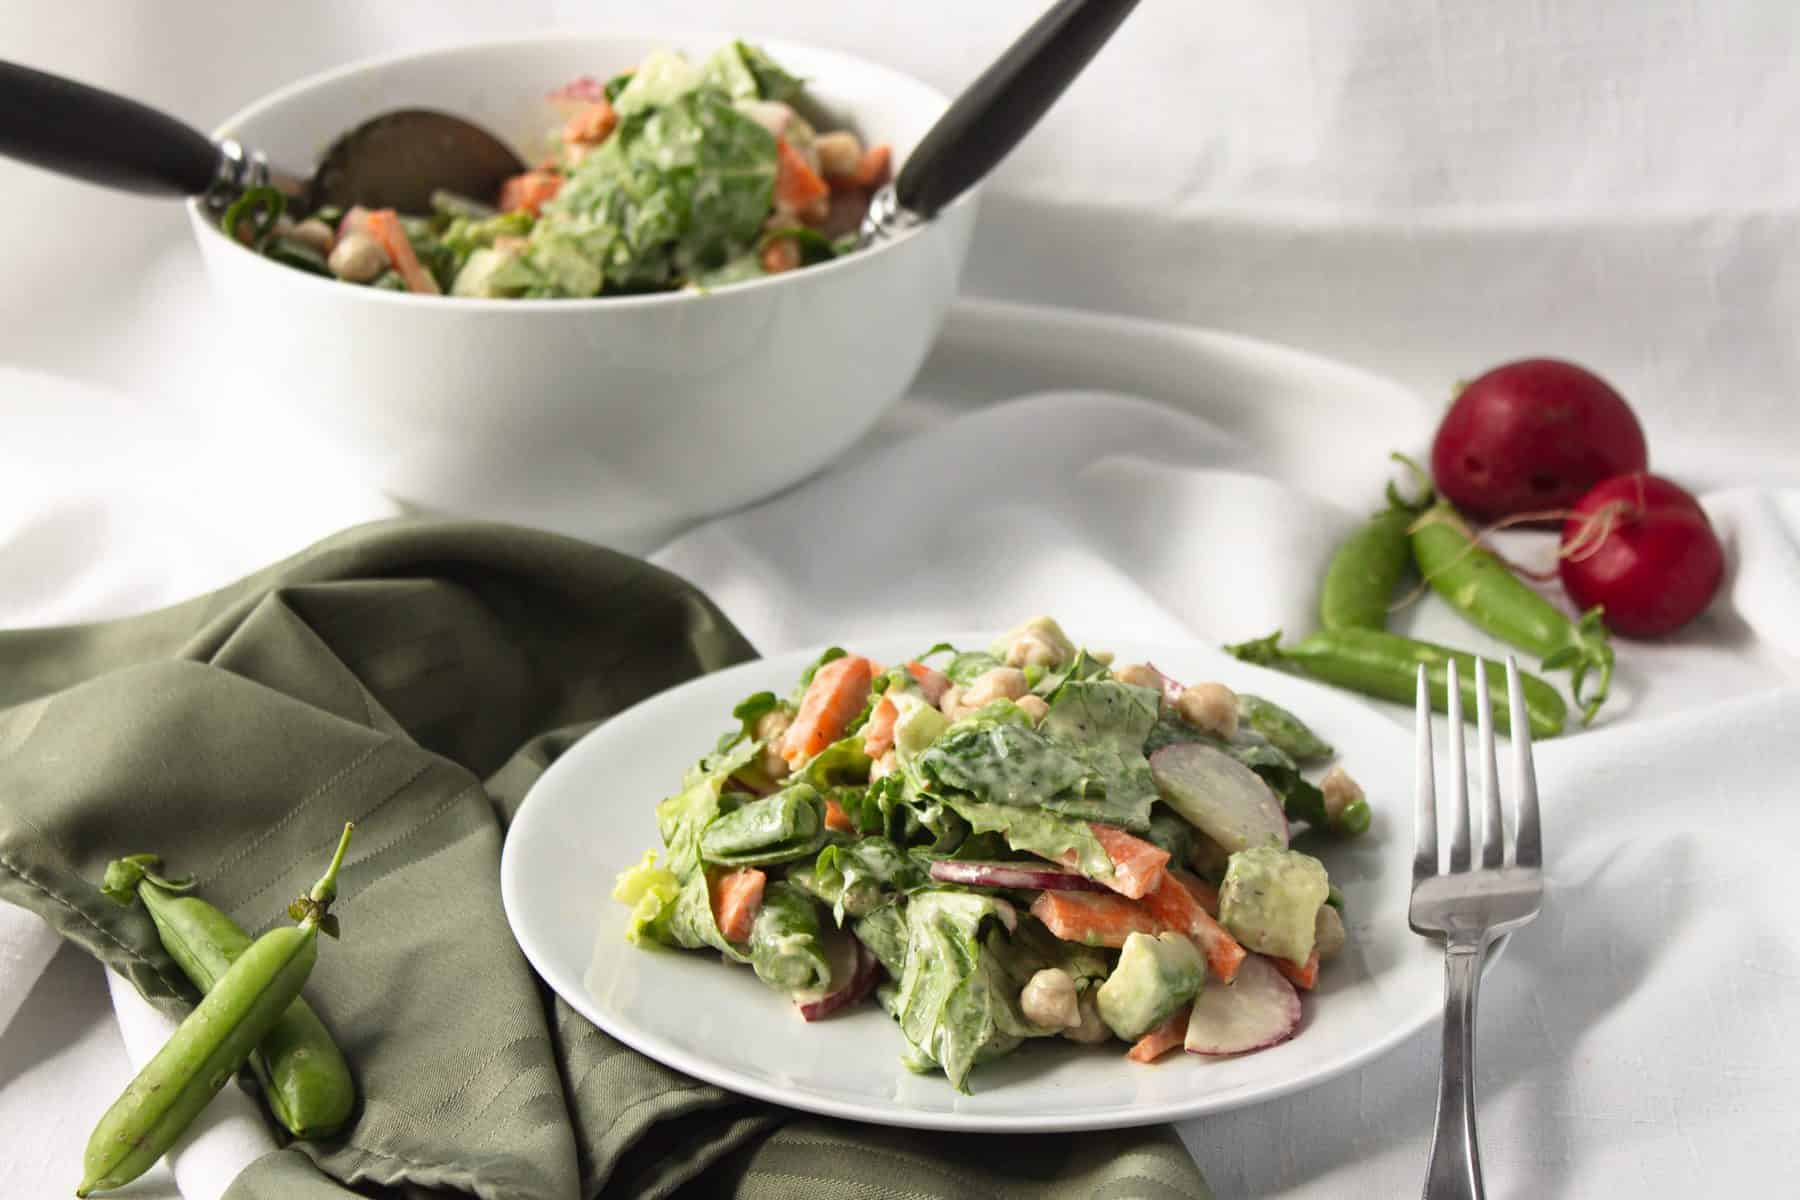 veggie salad in white bowl with fork and spoon in bowl and salad on white plate with green napkin and fork. Radishes and snap peas in backgroun